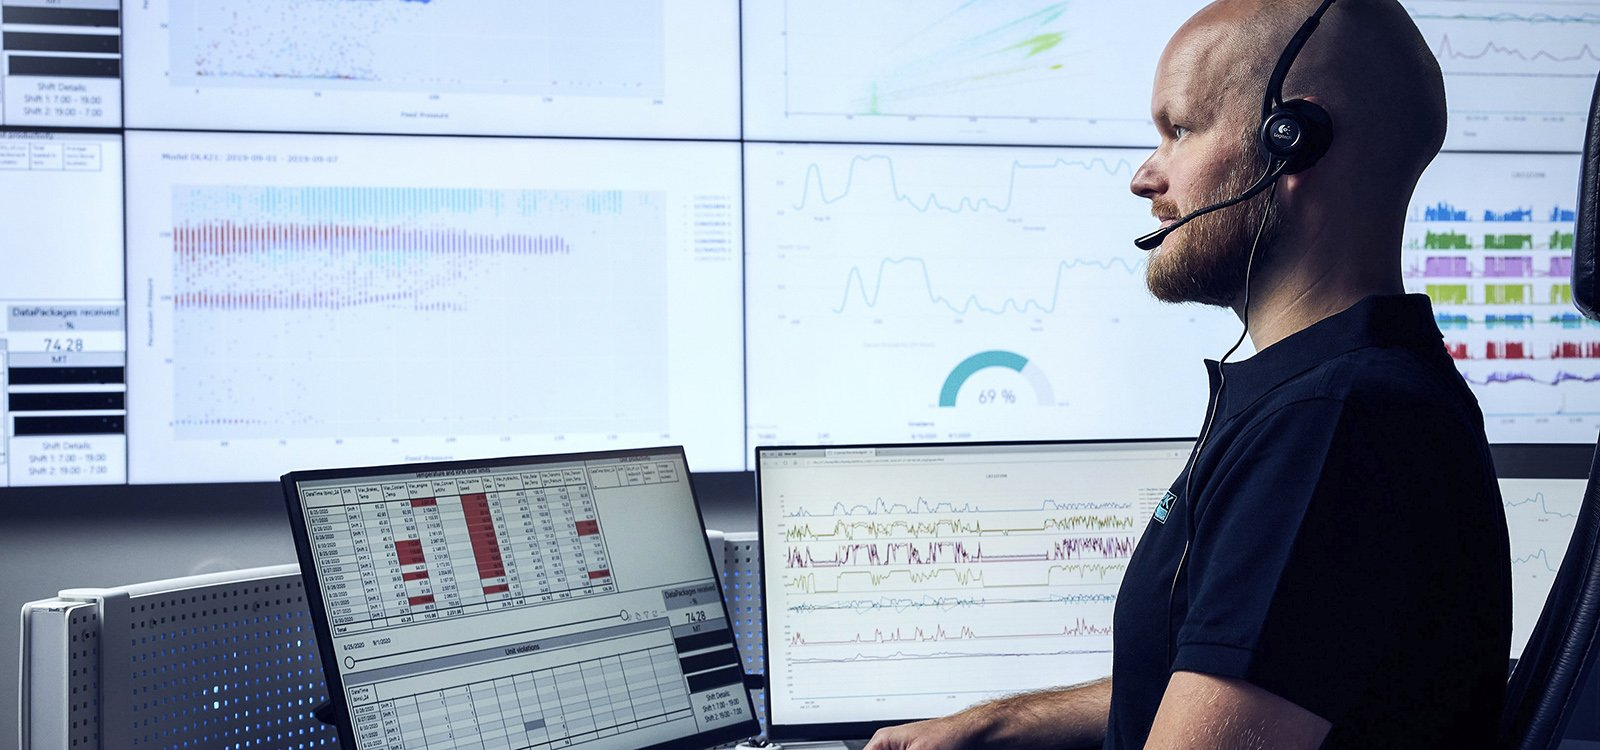 Sandvik's team of engineers trace and analyze the data acquired from the customers' underground production equipment around the clock.